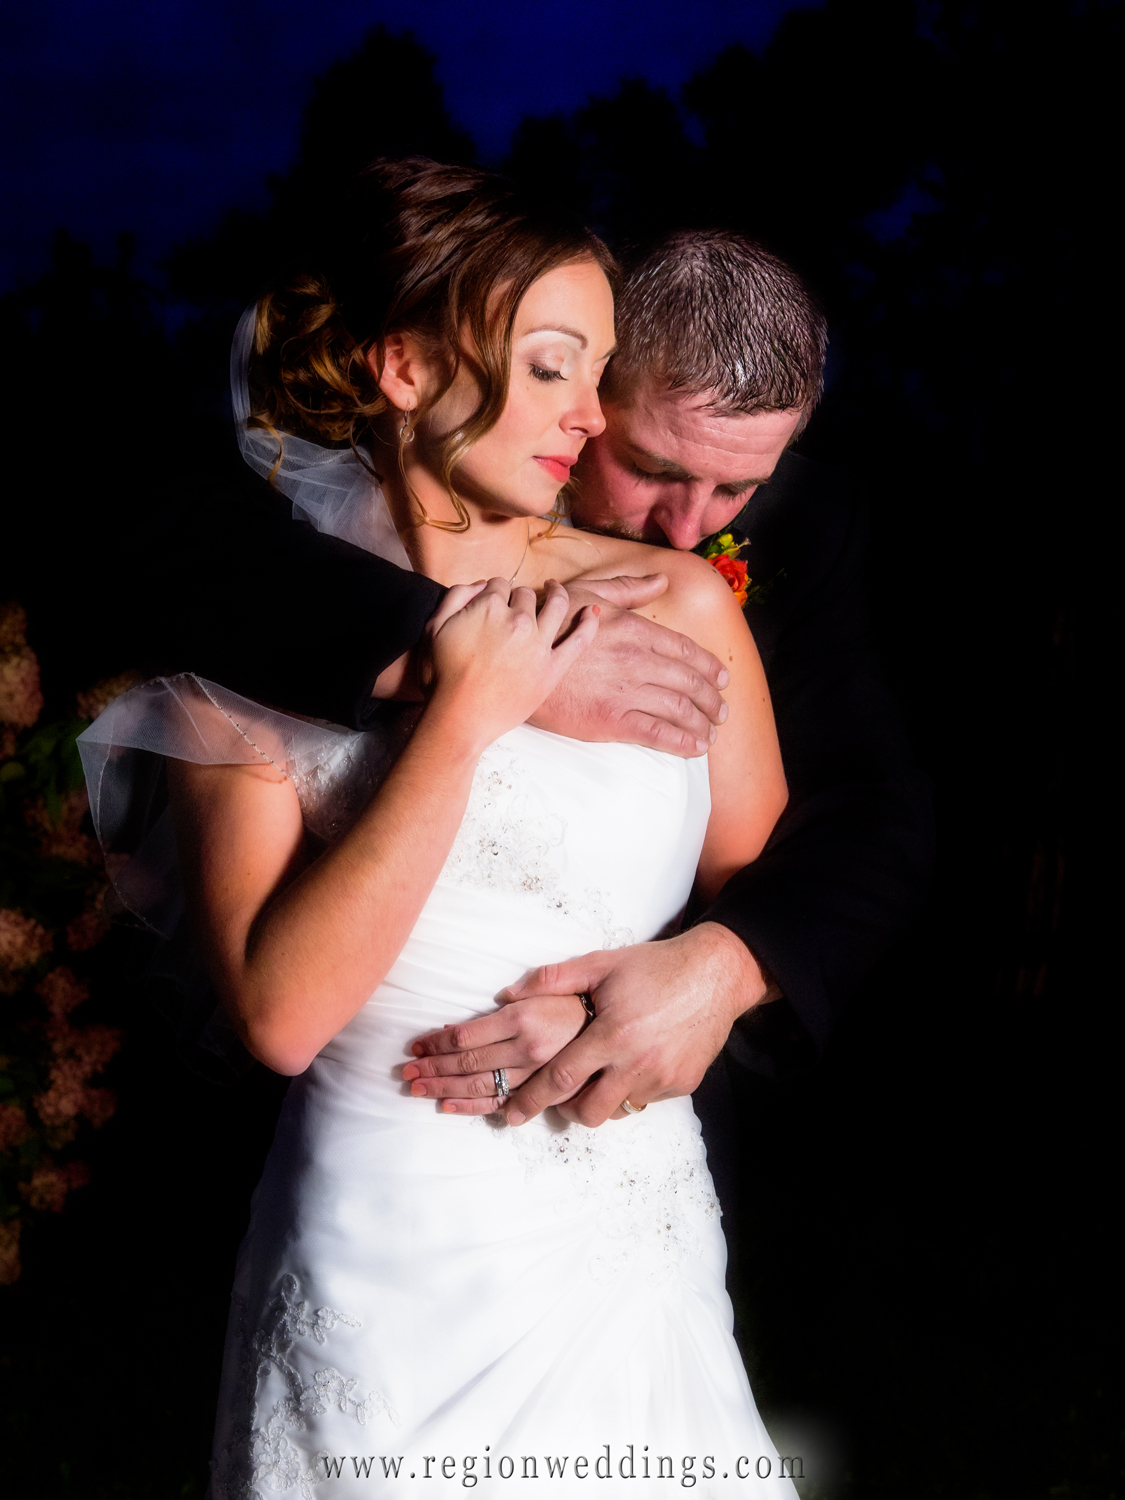 The bride and groom embrace in the dark for a romantic wedding photo.